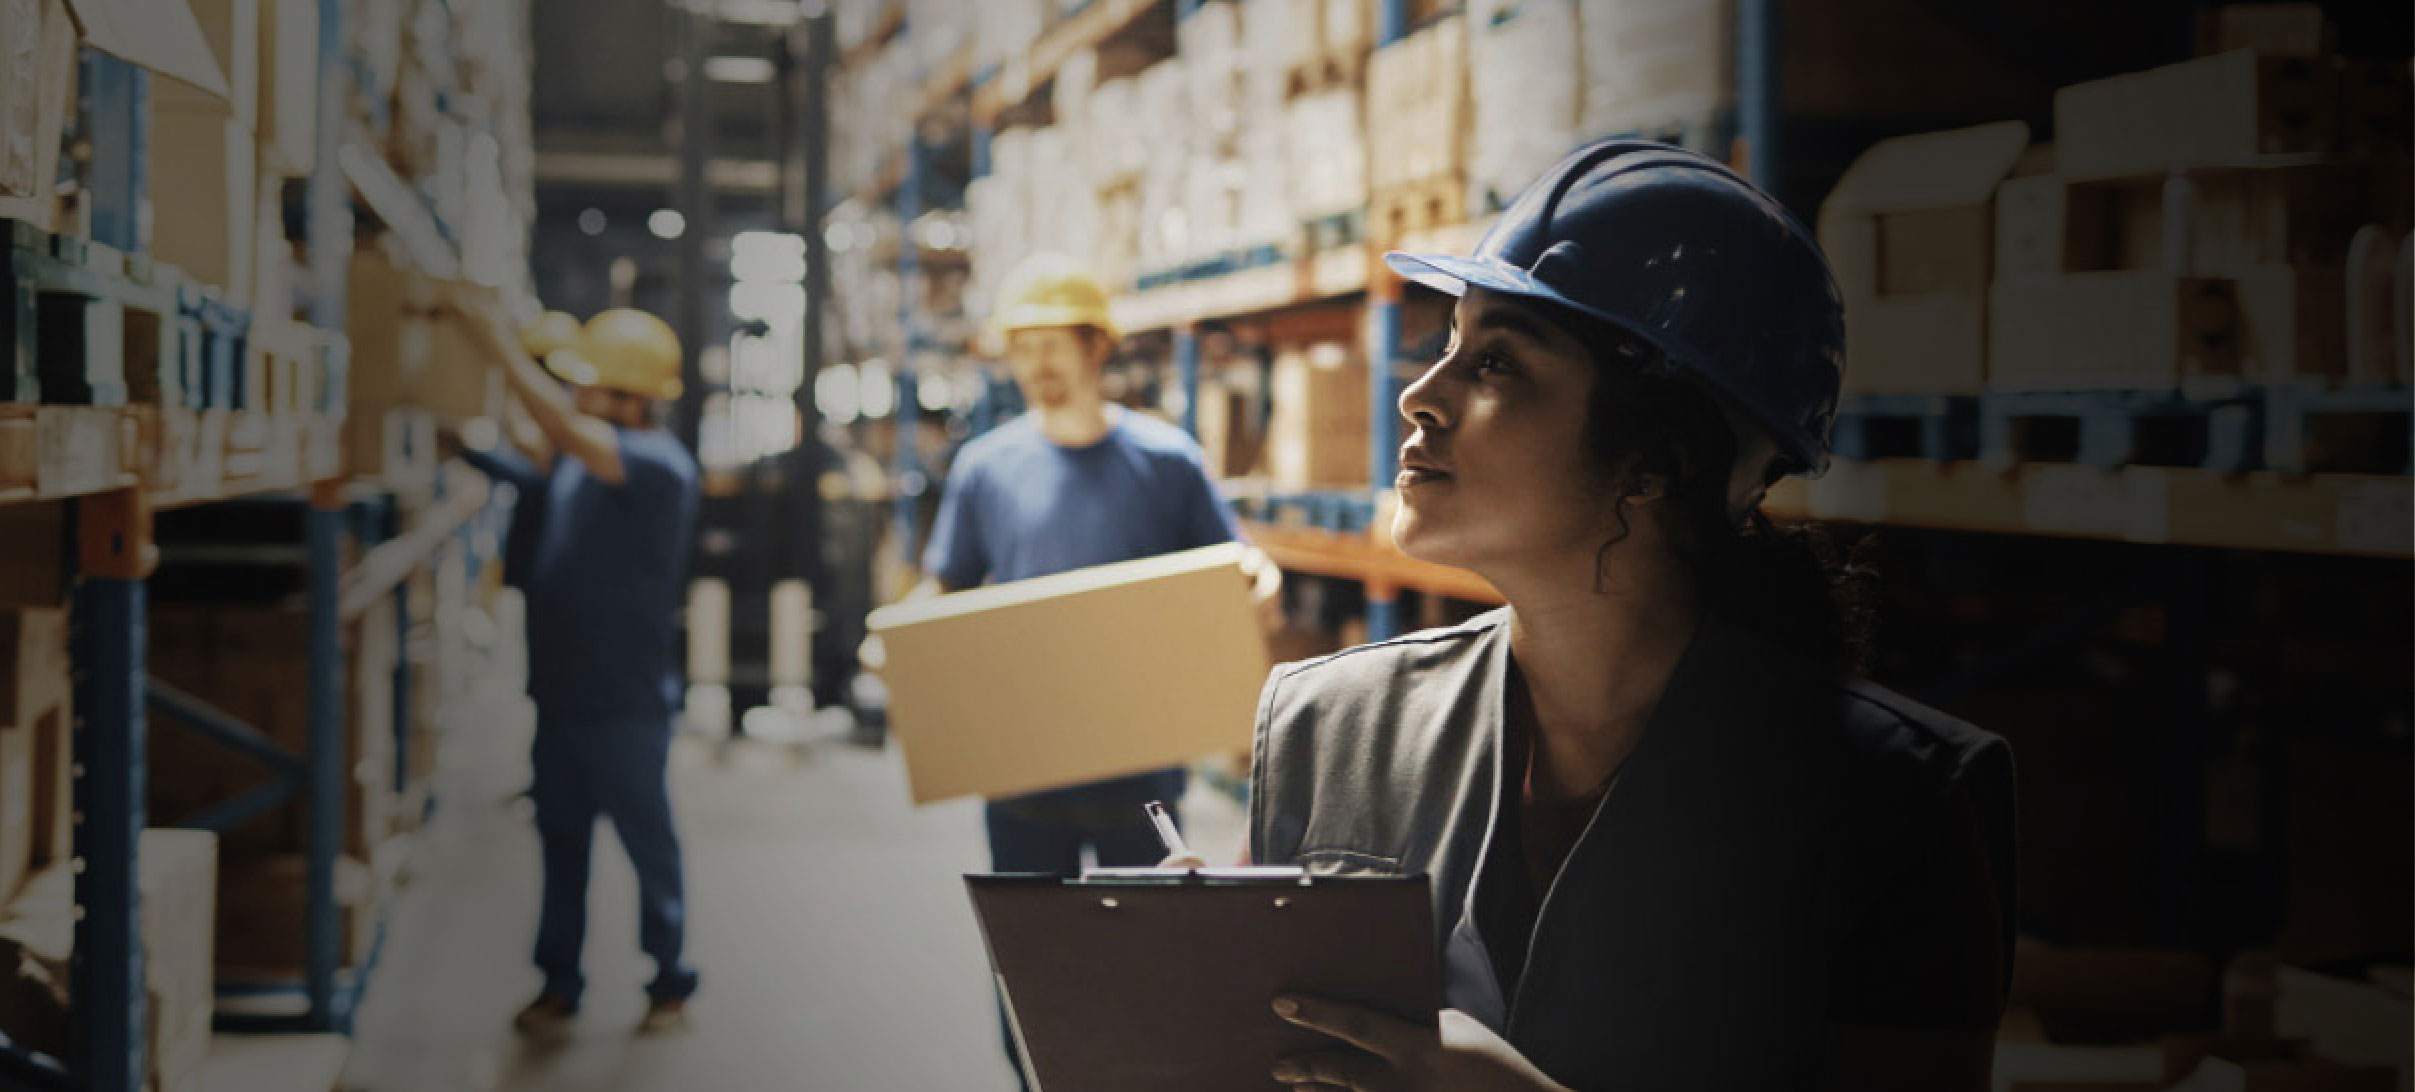 Image of a frontline worker inside of a warehouse wearing a hard hat and taking inventory, while in the background other workers move large cardboard boxes.